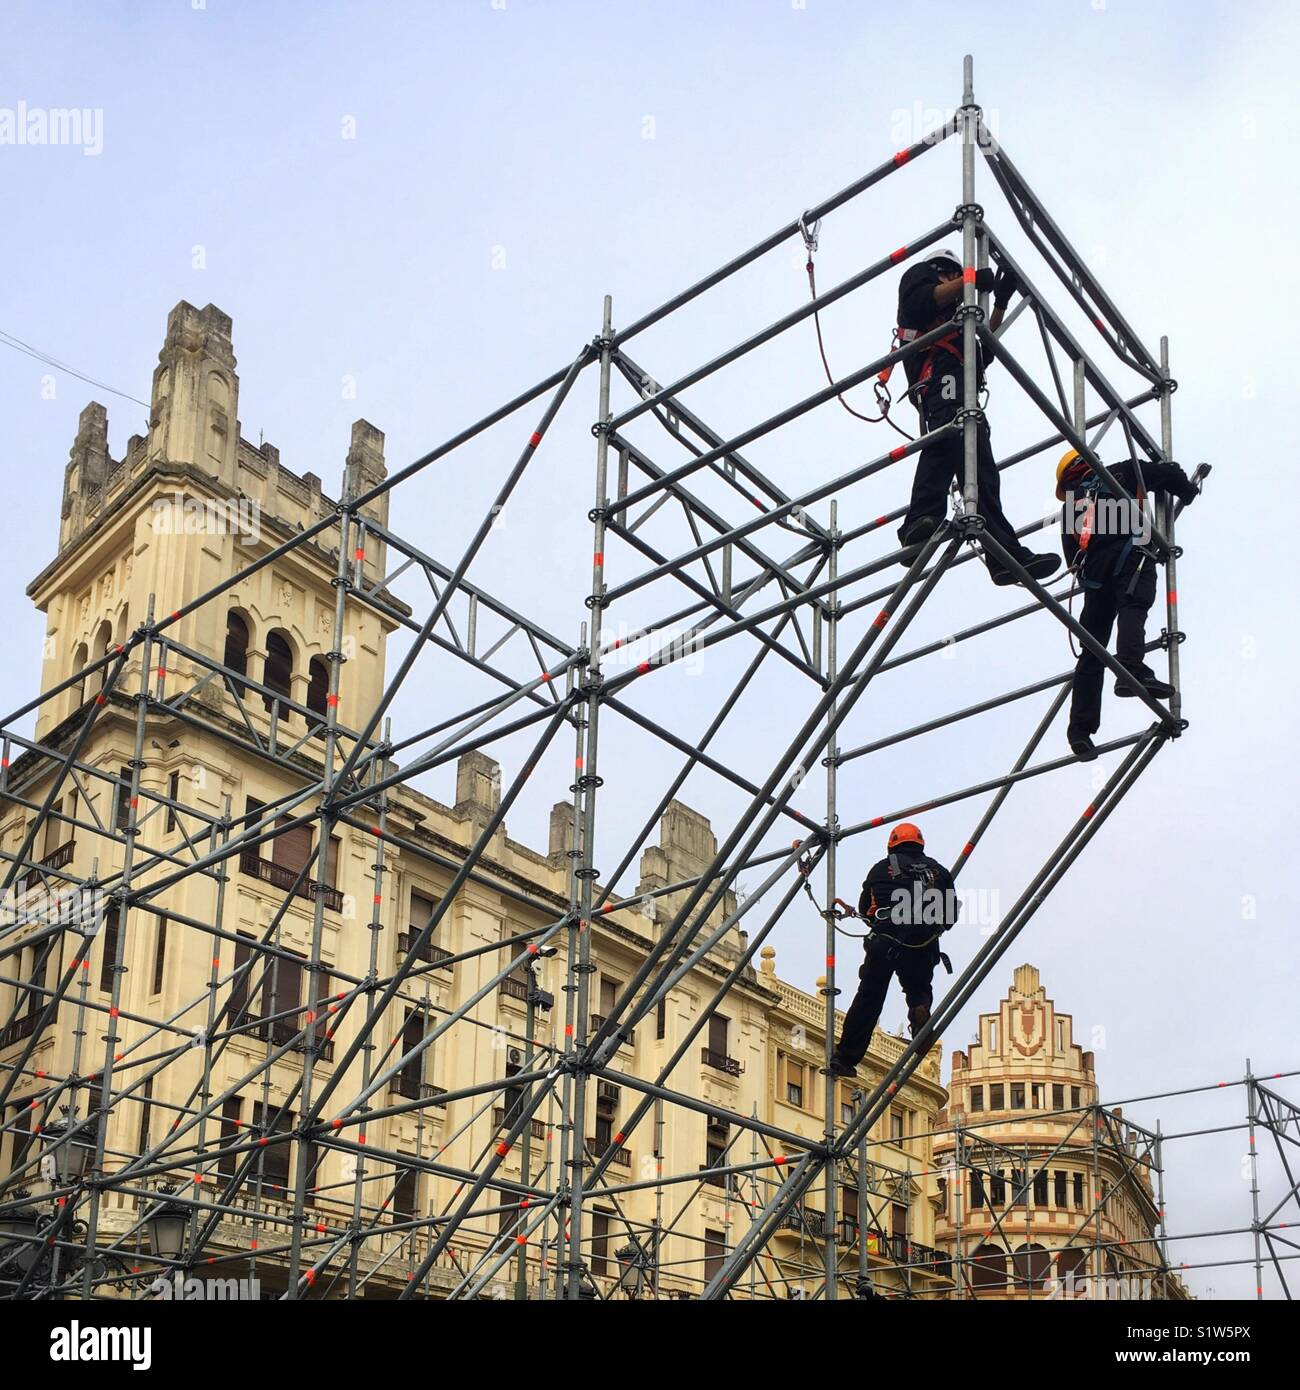 Acrobatic scaffolders build an open air stage in a city square - Stock Image